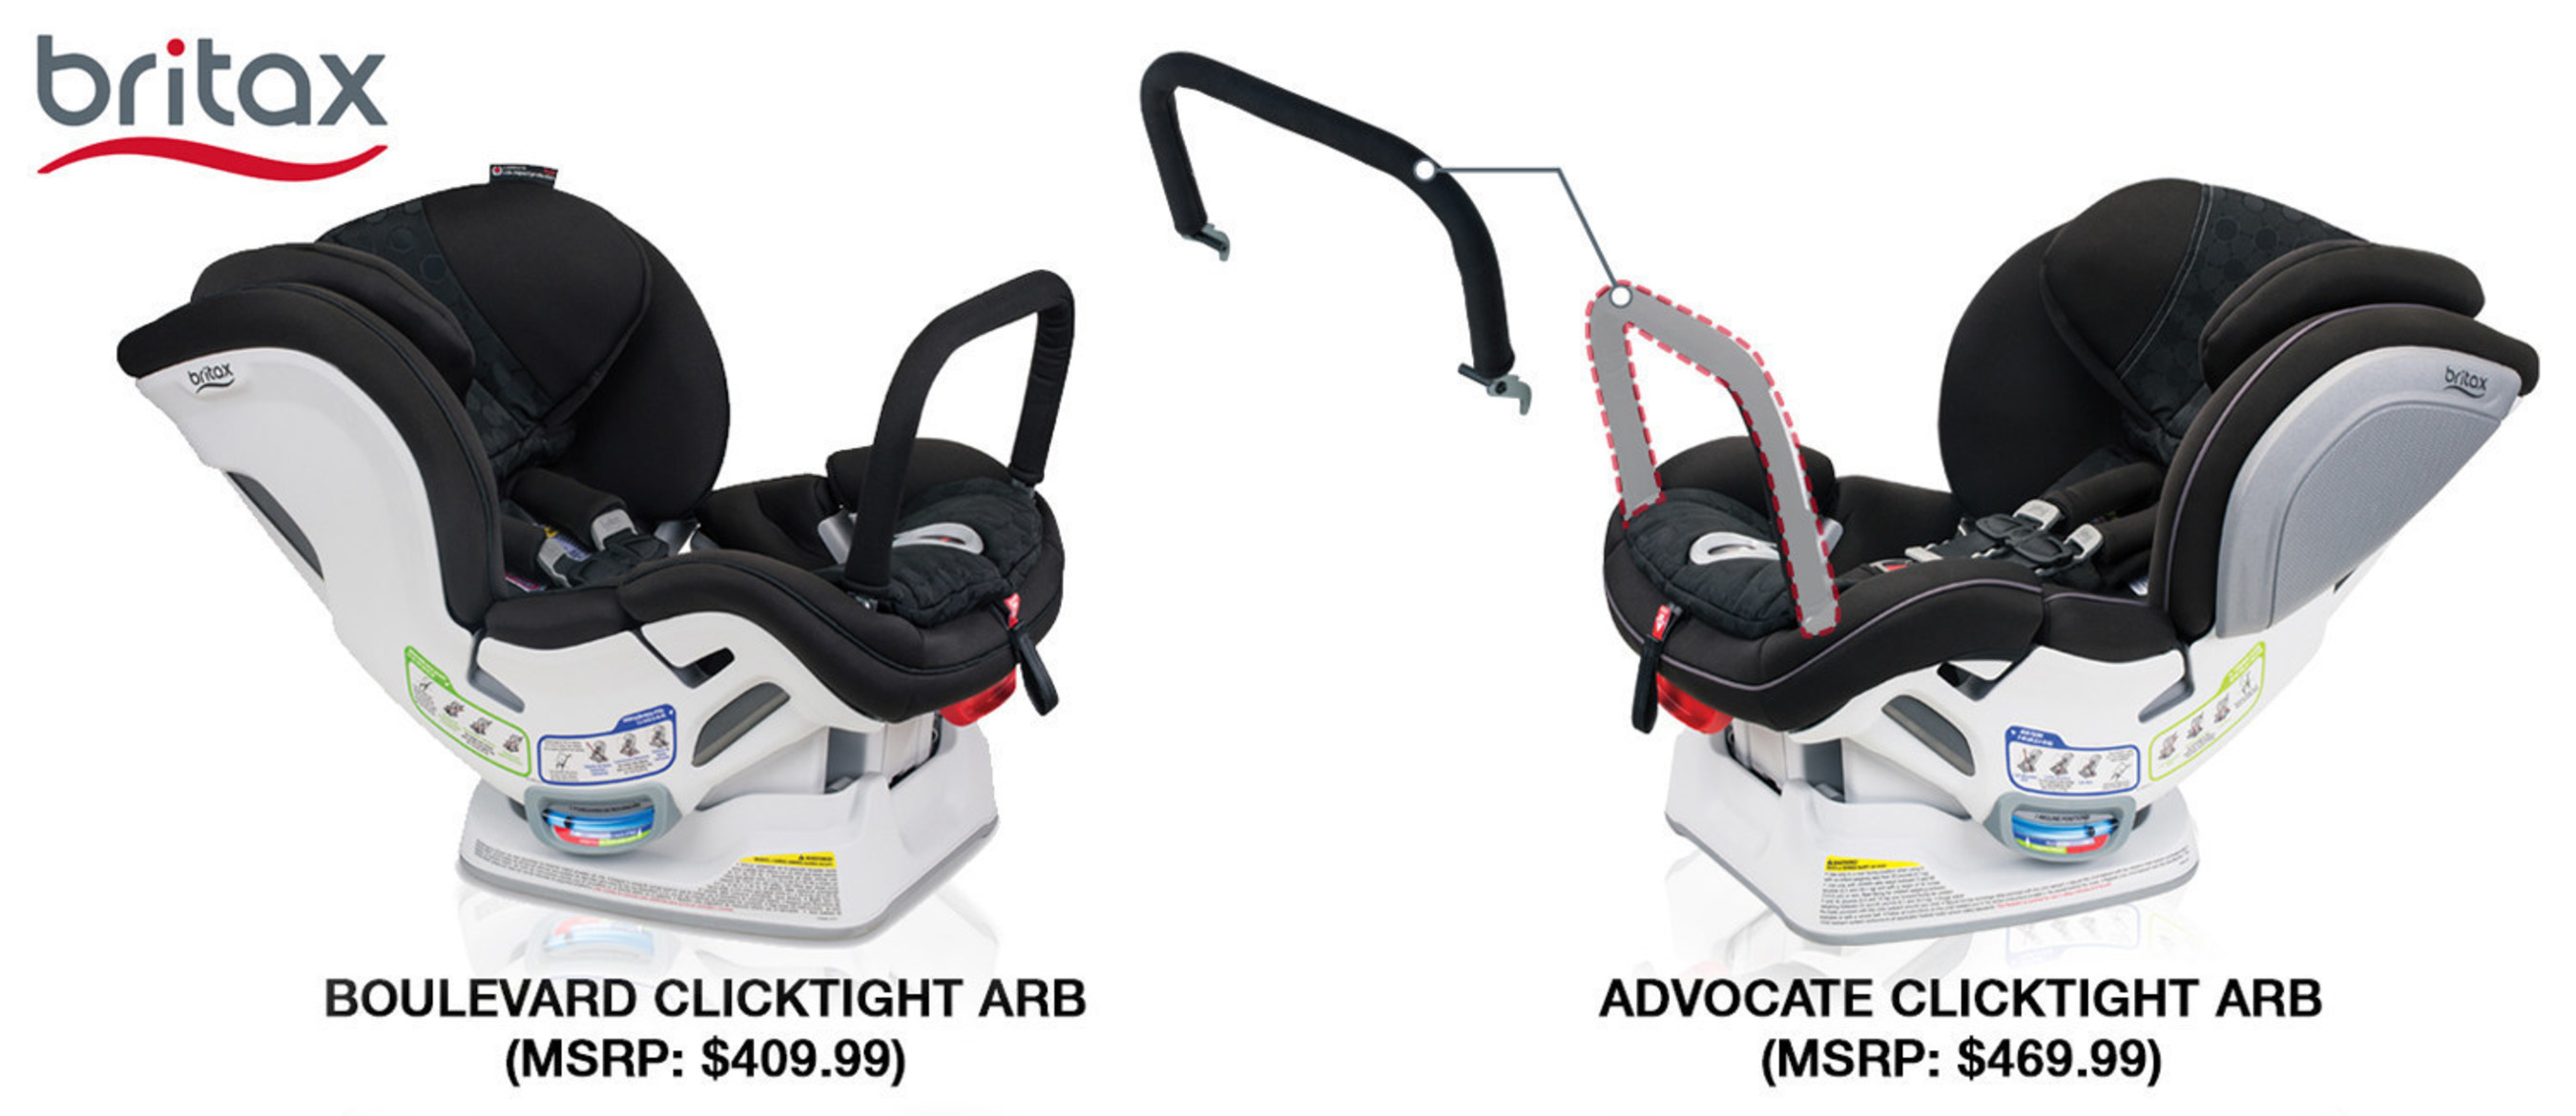 Britax Raises the Bar in Rear-Facing Safety with the Anti-Rebound Bar, providing advanced protection for rear-facing children by increasing stability, reducing rotation and lowering risk of injury